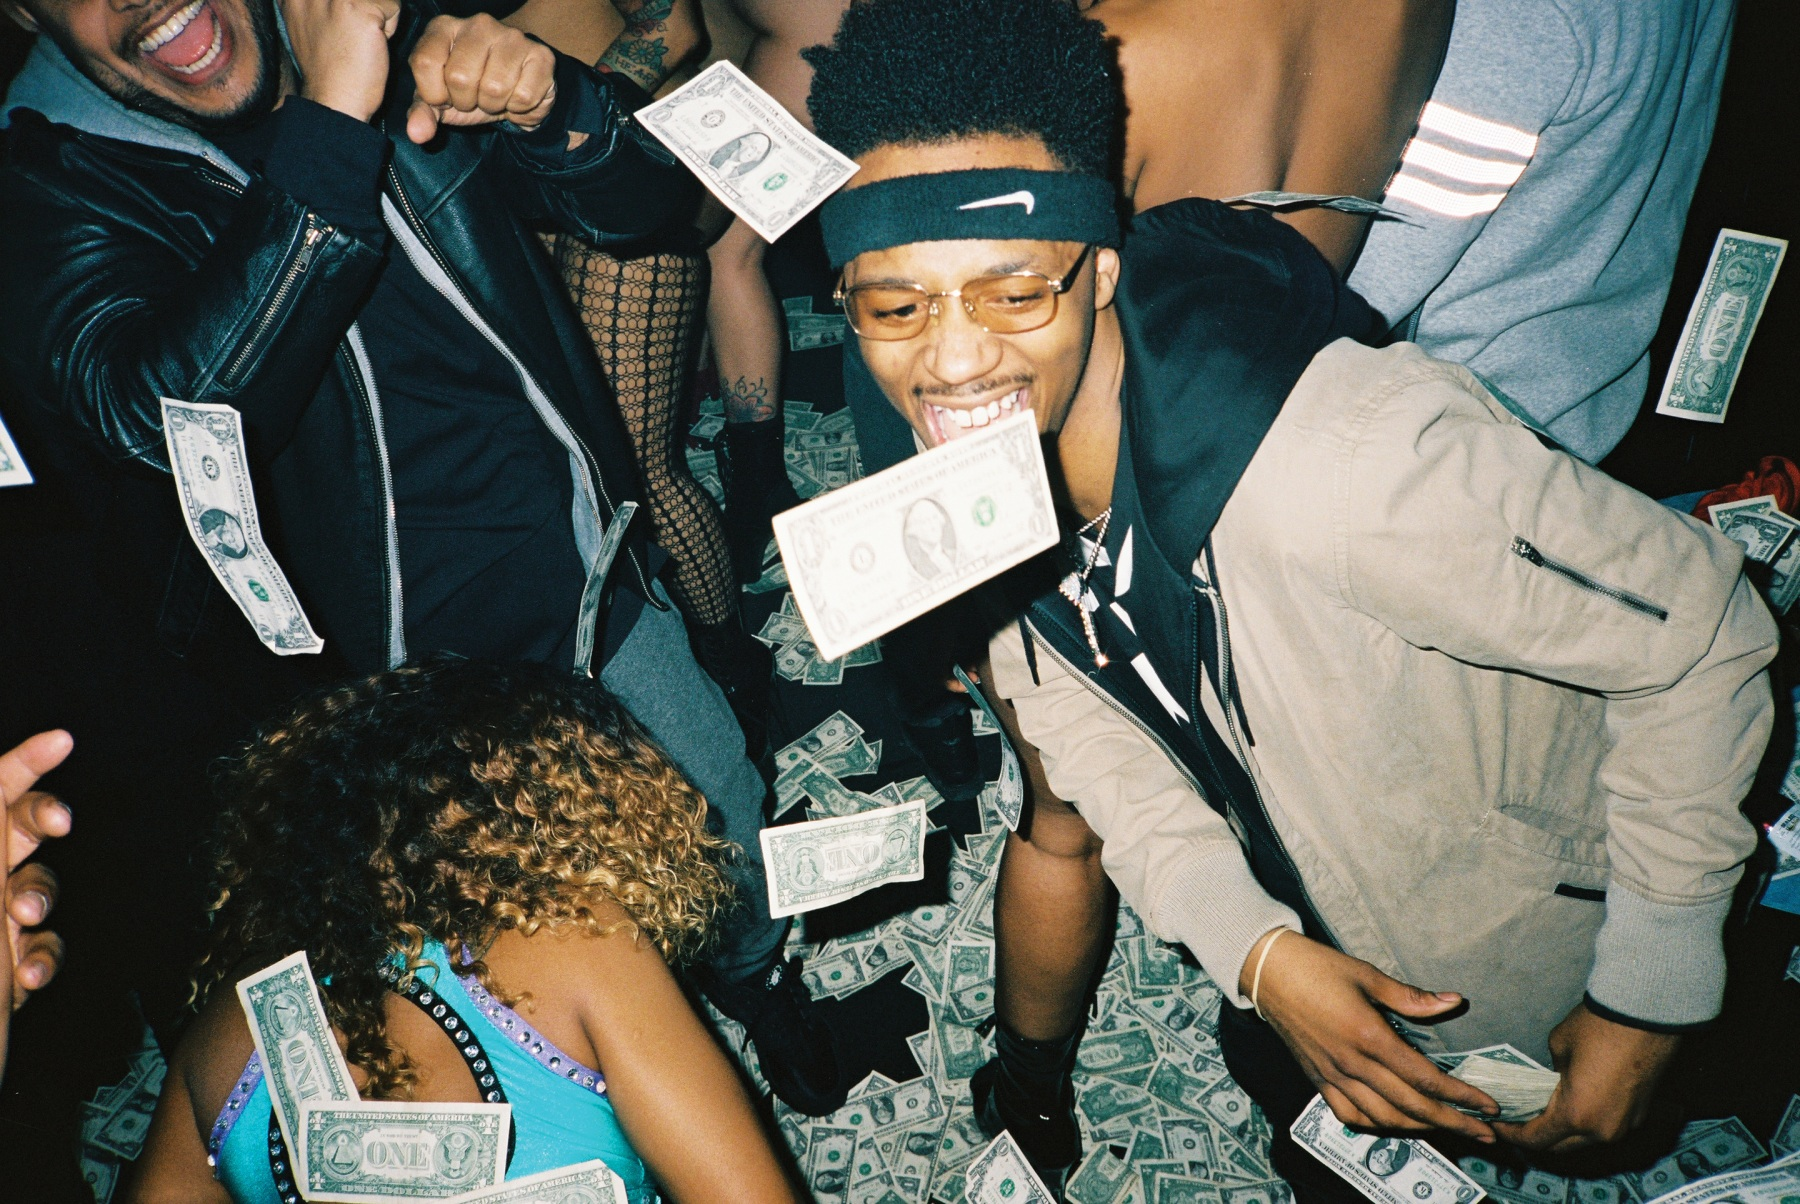 Metro Boomin   Photo Direction  Photographer: Gunner Stahl  For the FADER 2016